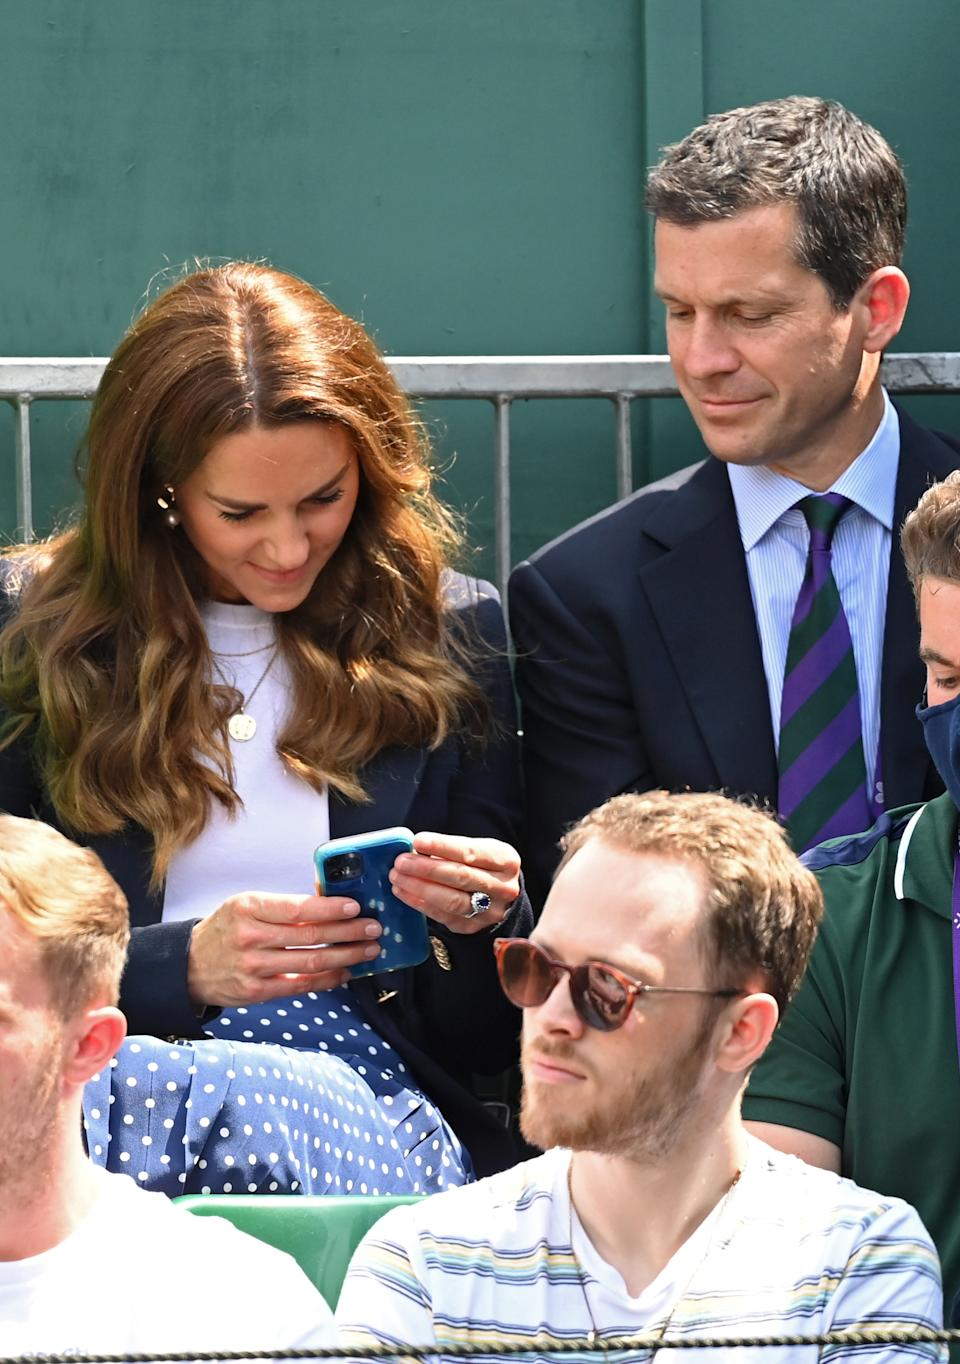 LONDON, ENGLAND - JULY 02: Catherine, Duchess of Cambridge checks her phone while attending Wimbledon Championships Tennis Tournament with Tim Henman at the All England Lawn Tennis and Croquet Club on July 02, 2021 in London, England. (Photo by Karwai Tang/WireImage)